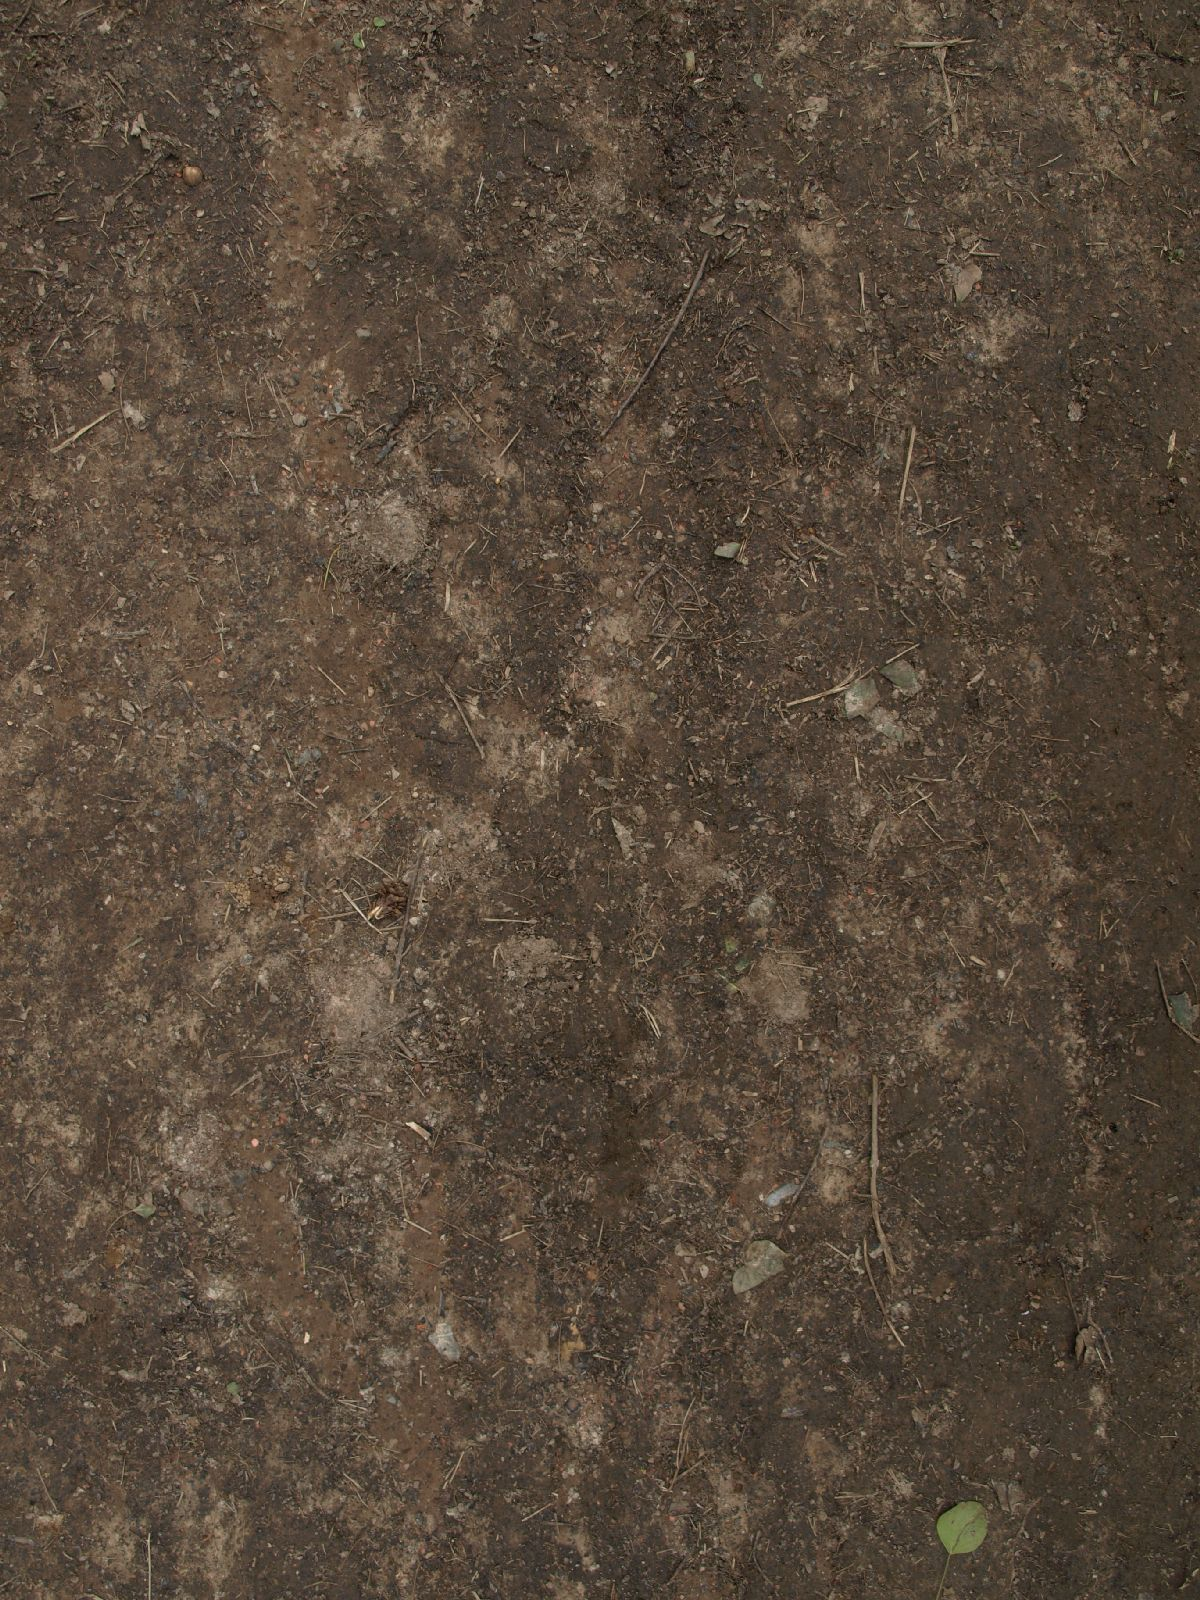 Ground-Nature_Texture_A_P4231708